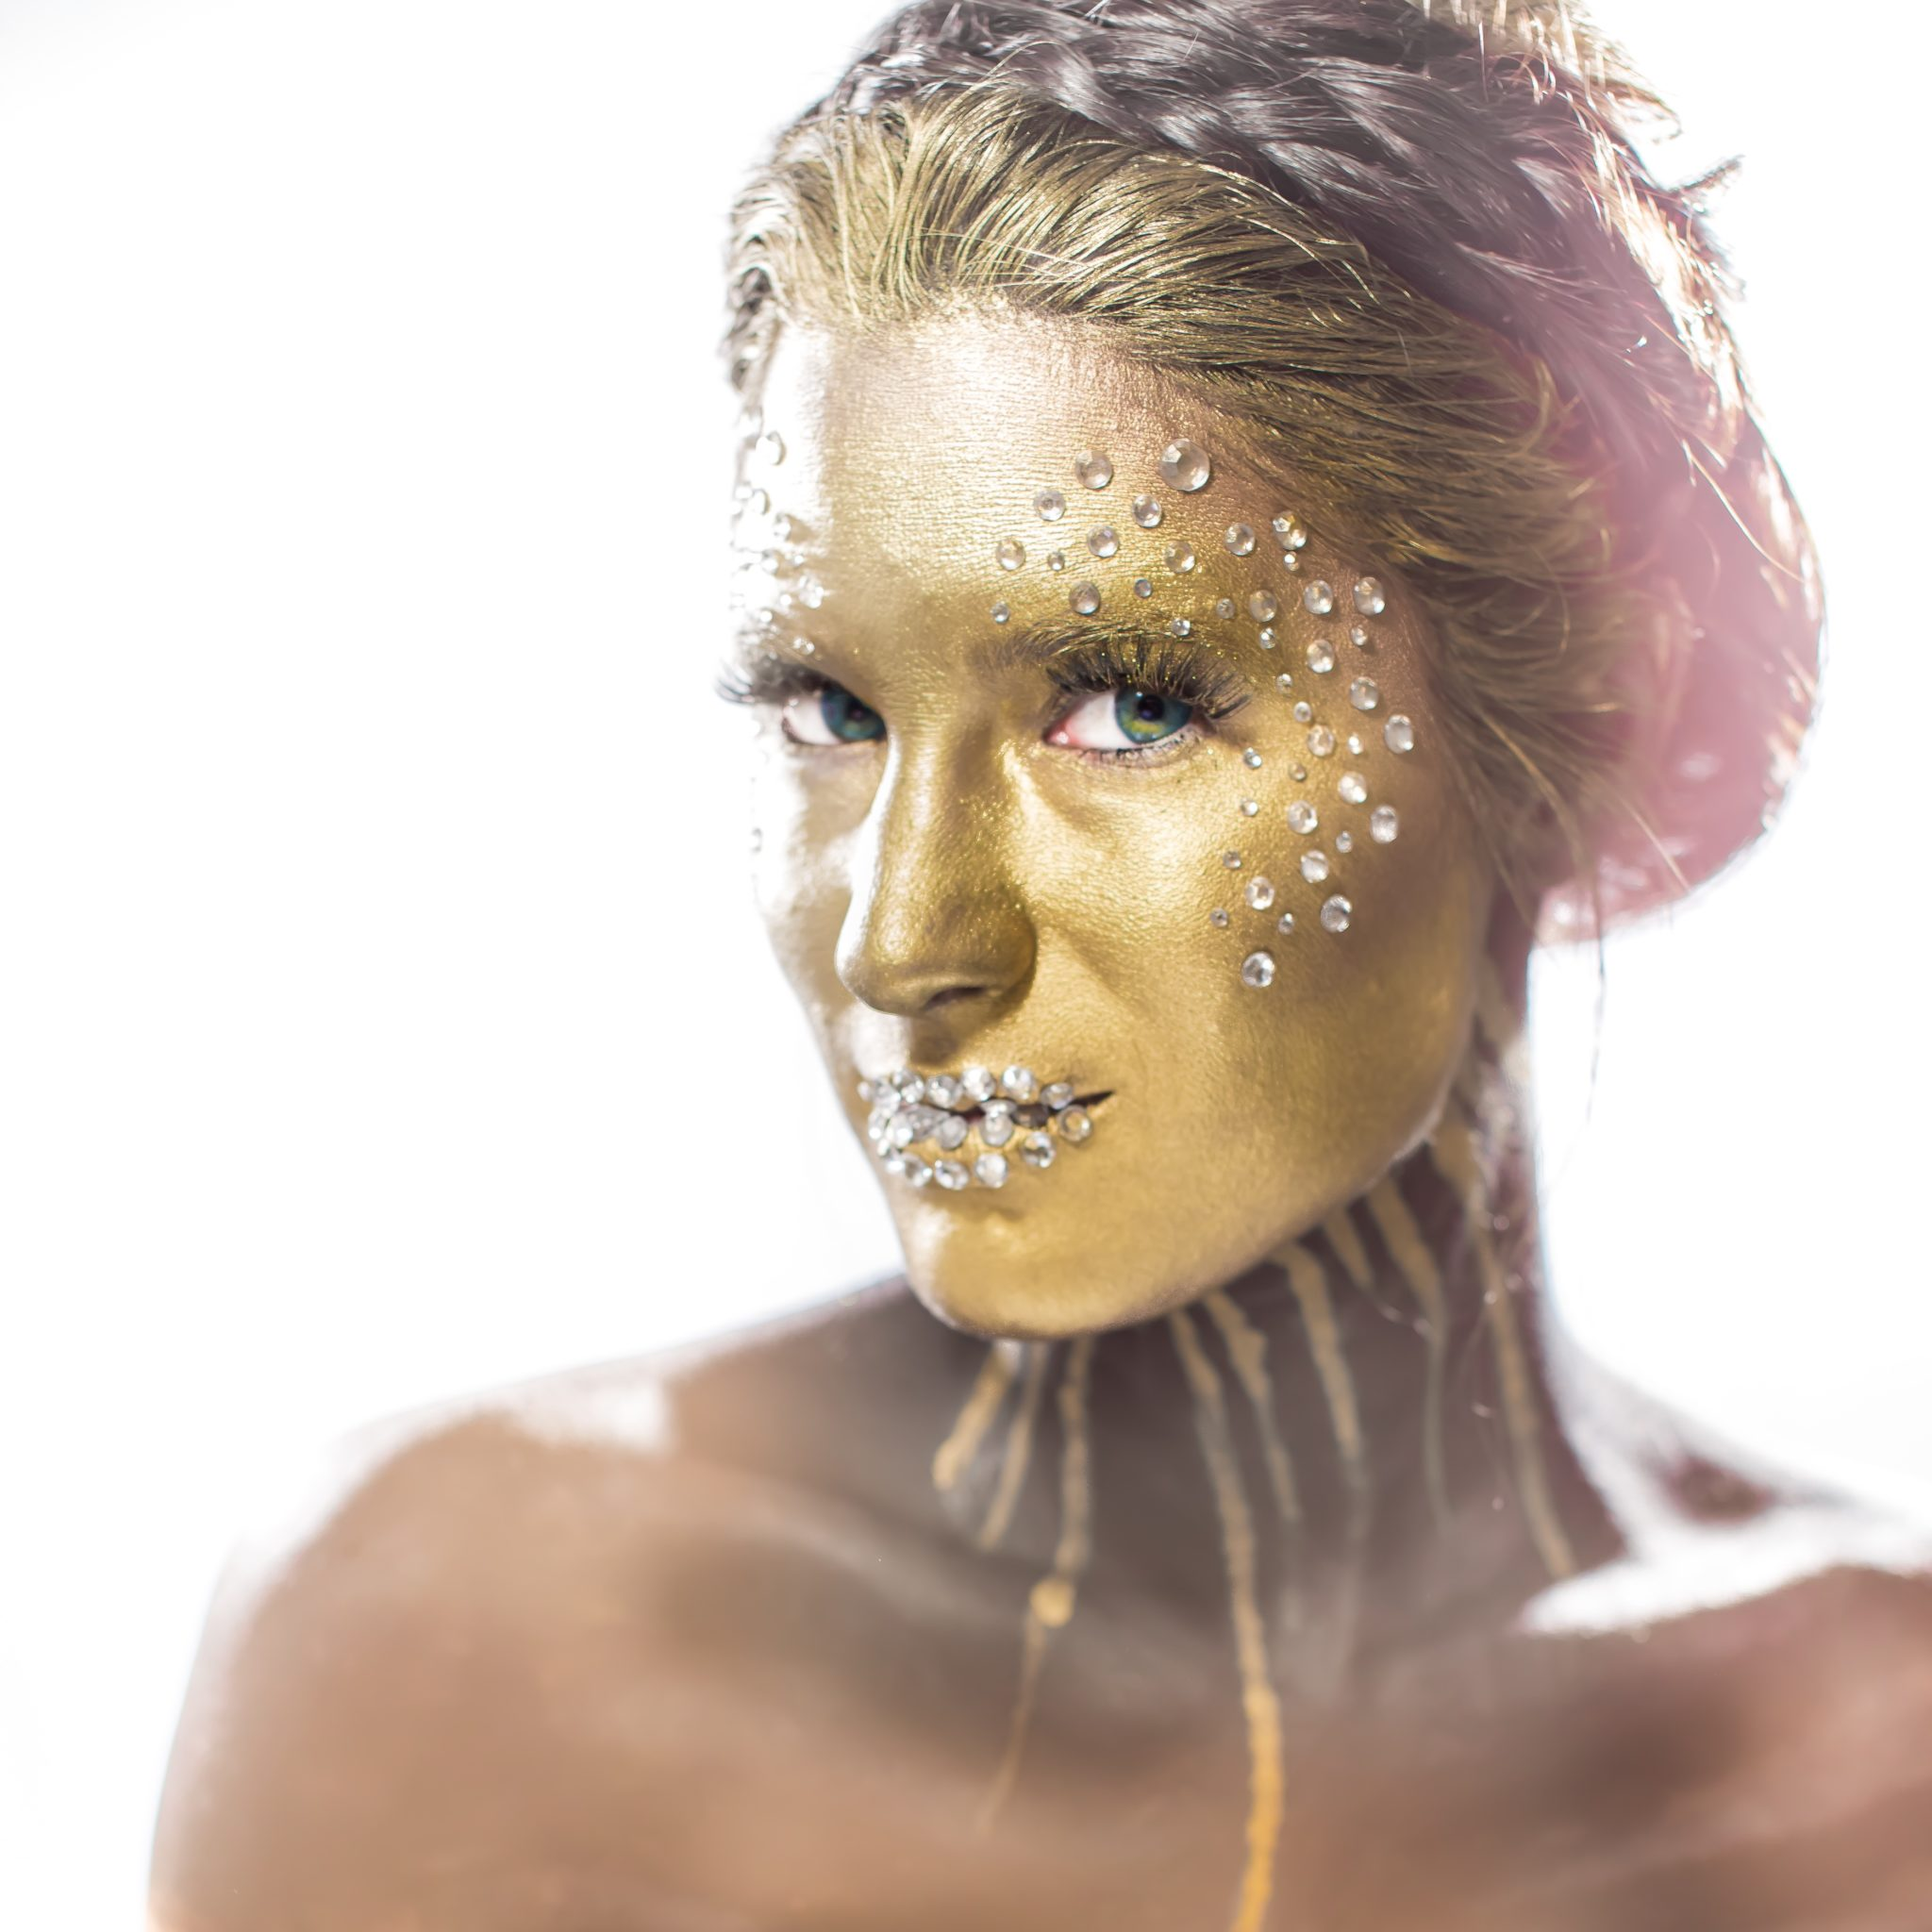 Gold Face Halloween Makeup | halloween makeup ideas | halloween costume ideas | how to do makeup for halloween | halloween inspired makeup ideas | makeup tips for halloween || Dressed to Kill